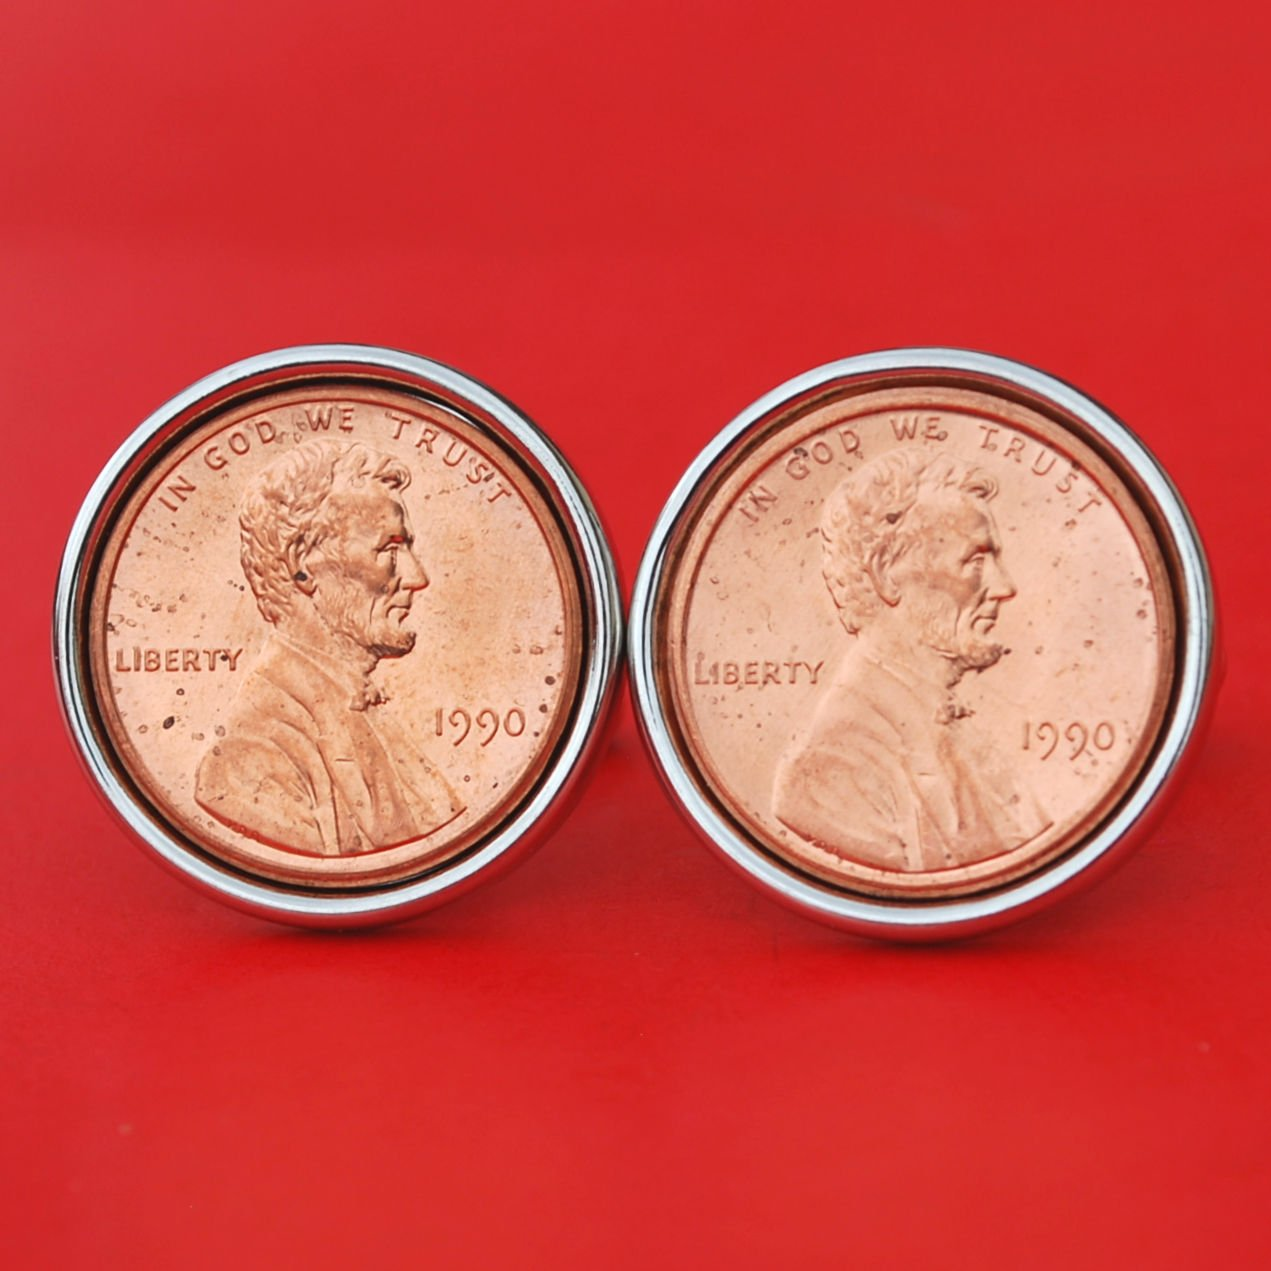 US 1990 Lincoln Small Cent BU Uncirculated Coin Silver Plated Cufflinks NEW - Lucky Penny